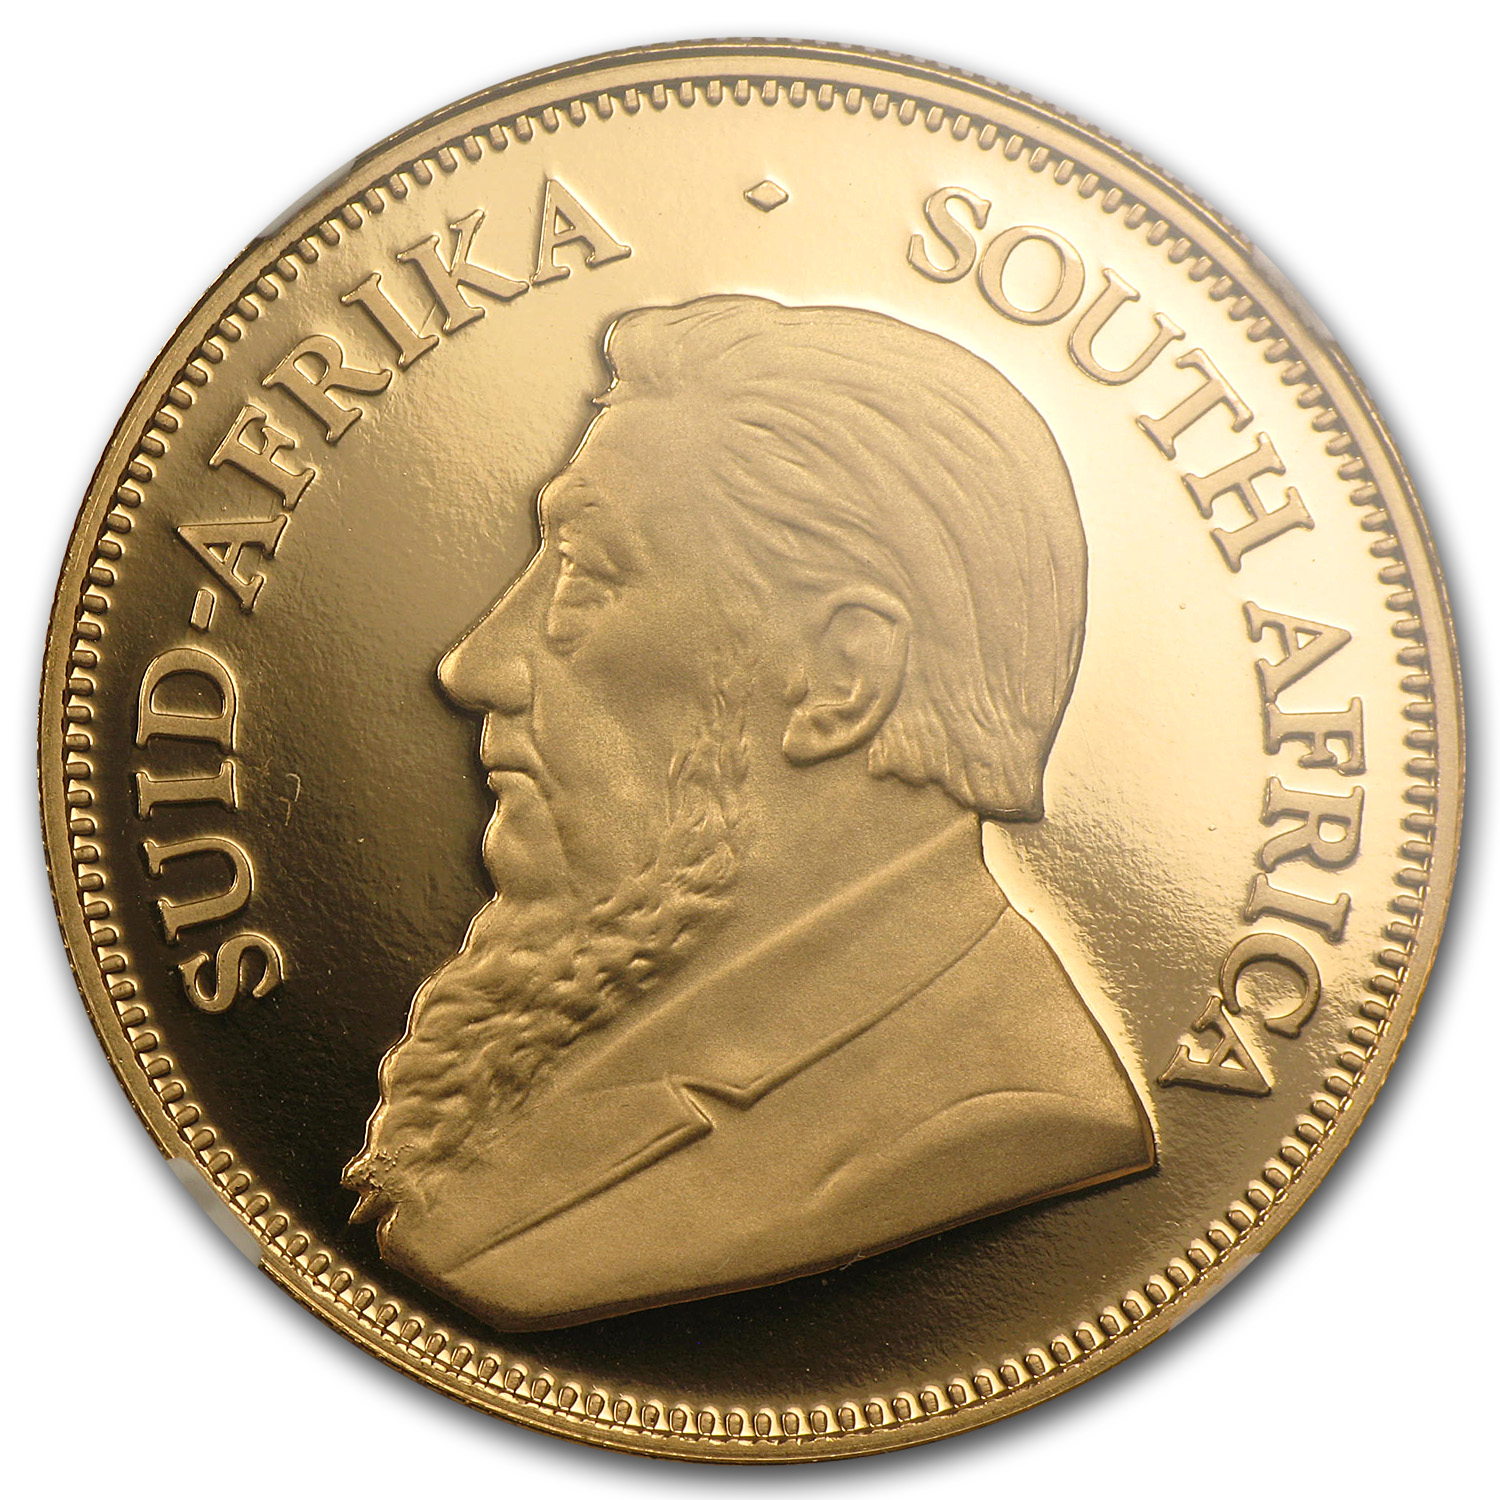 2002 1 oz Gold South African Krugerrand PF-69 NGC